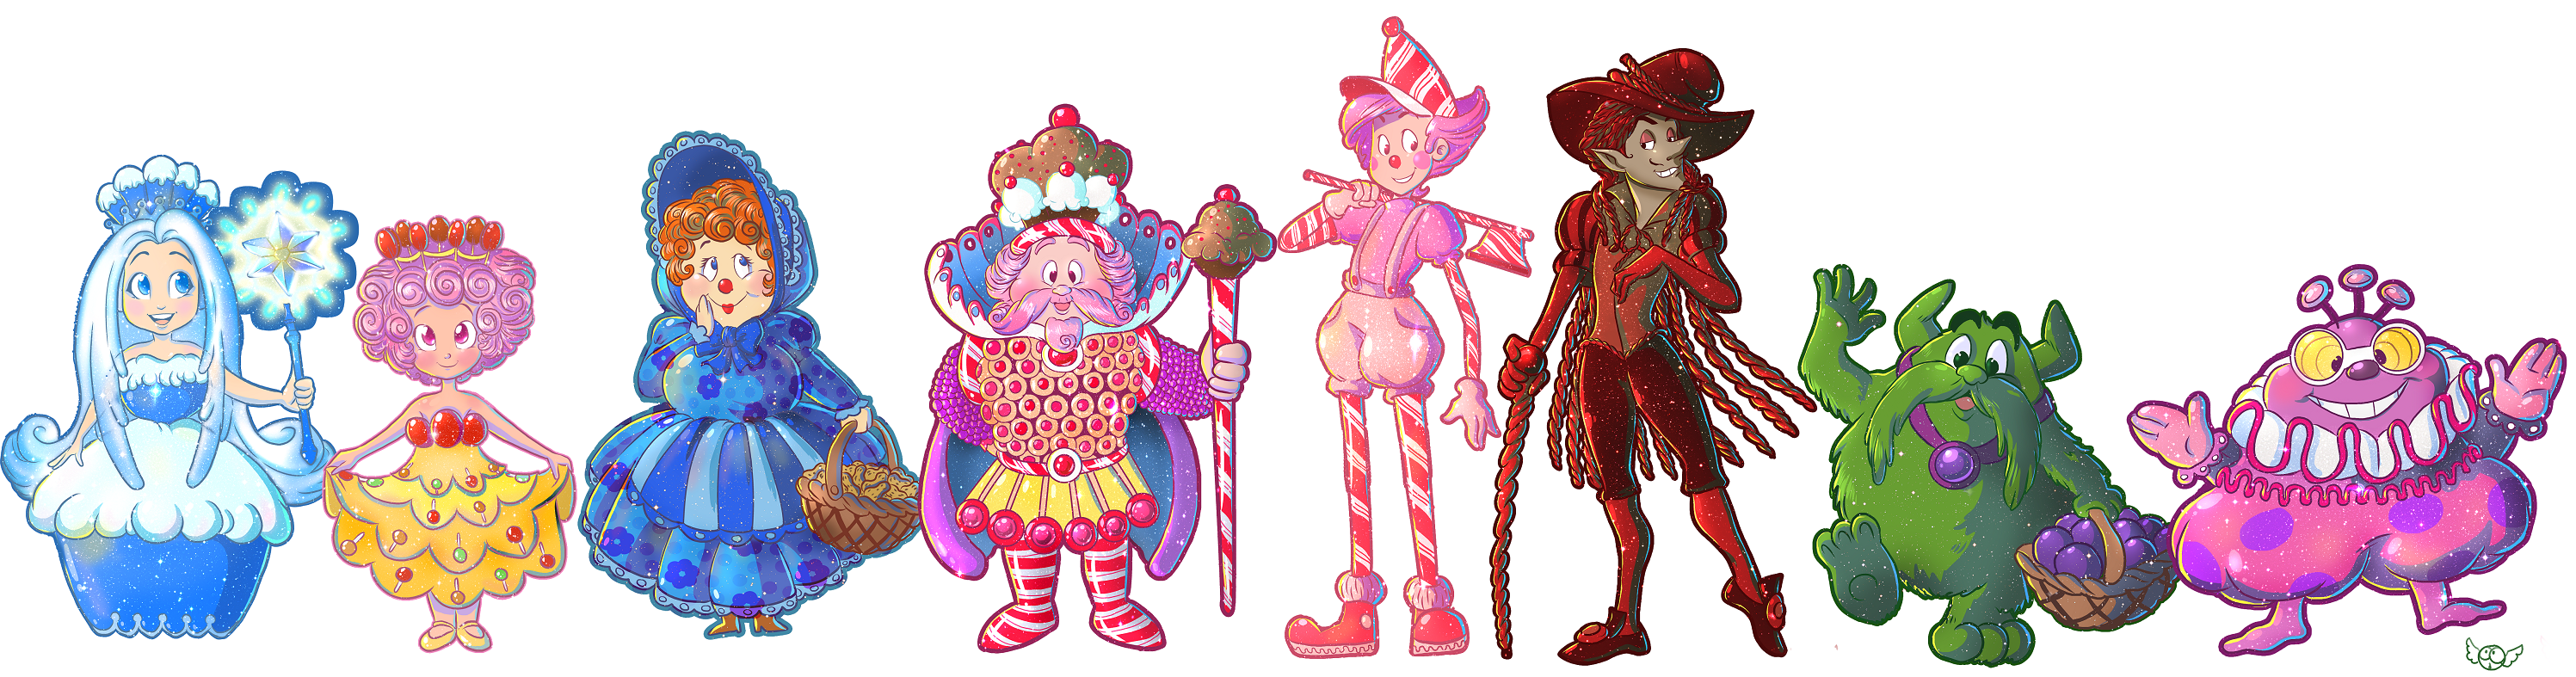 Candyland Characters!